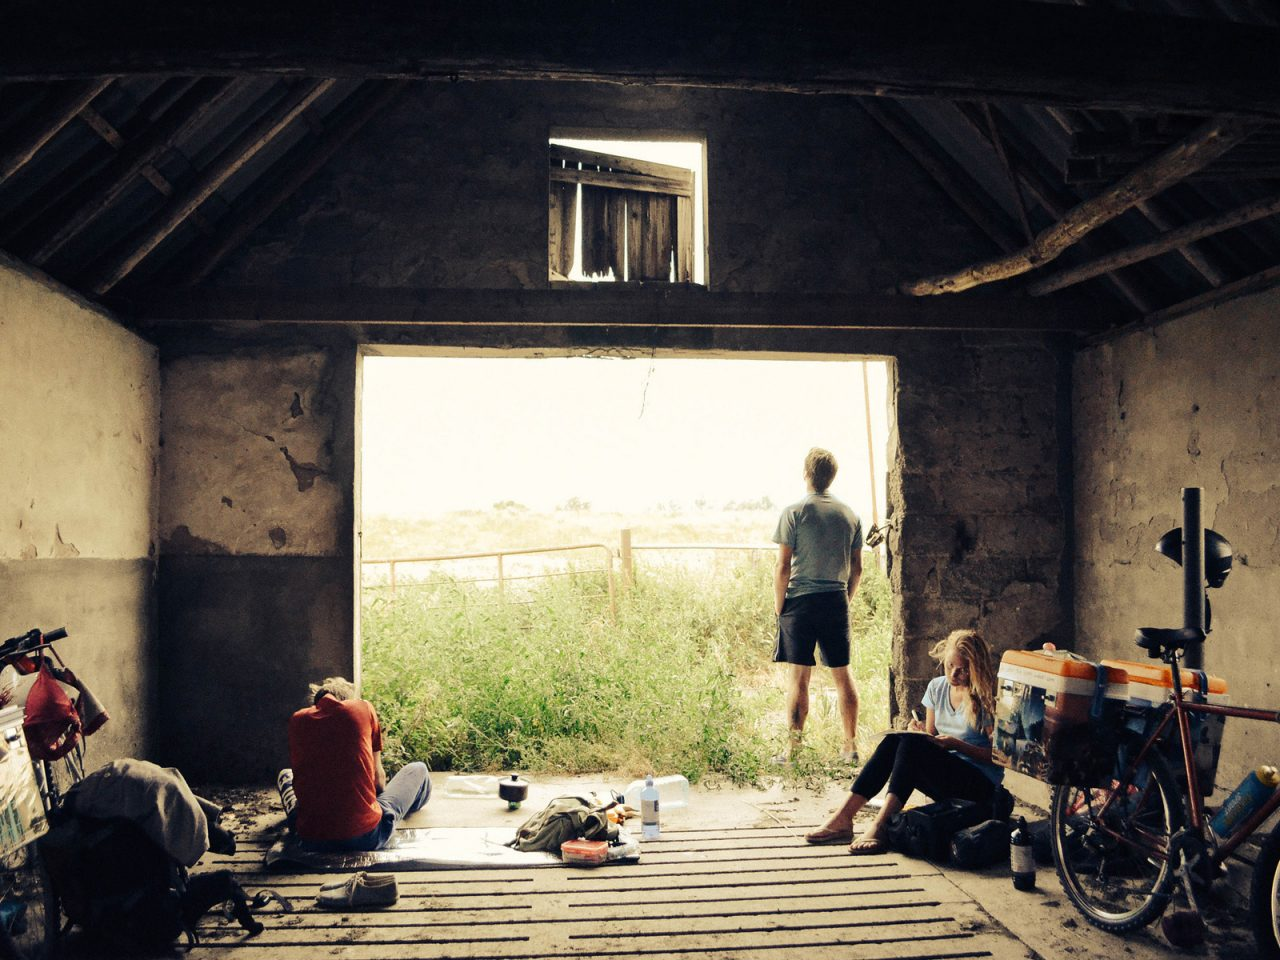 In a Barn, Germany - Free Camping